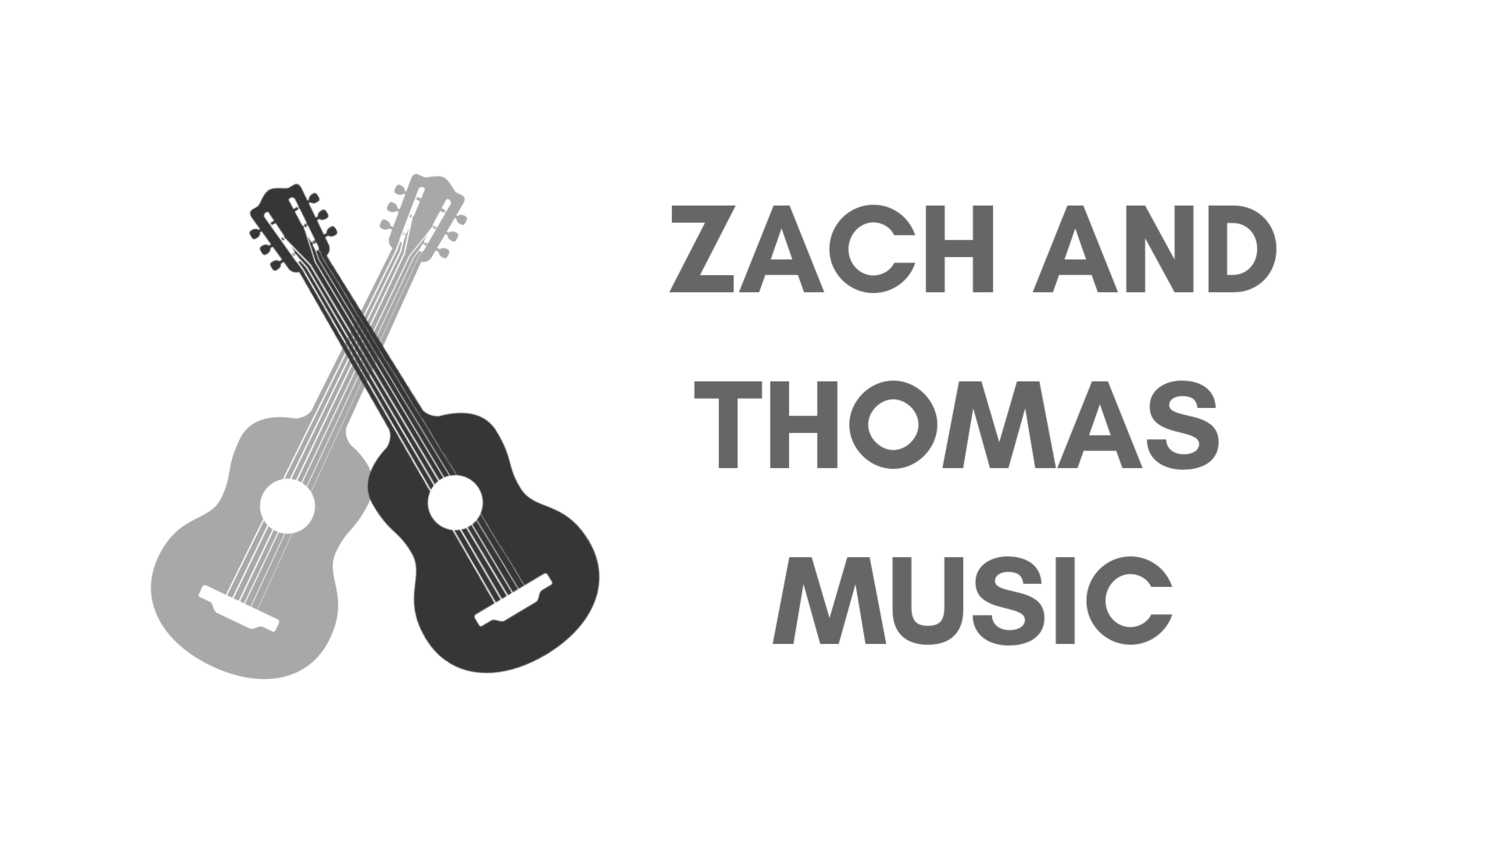 Zach and Thomas Music